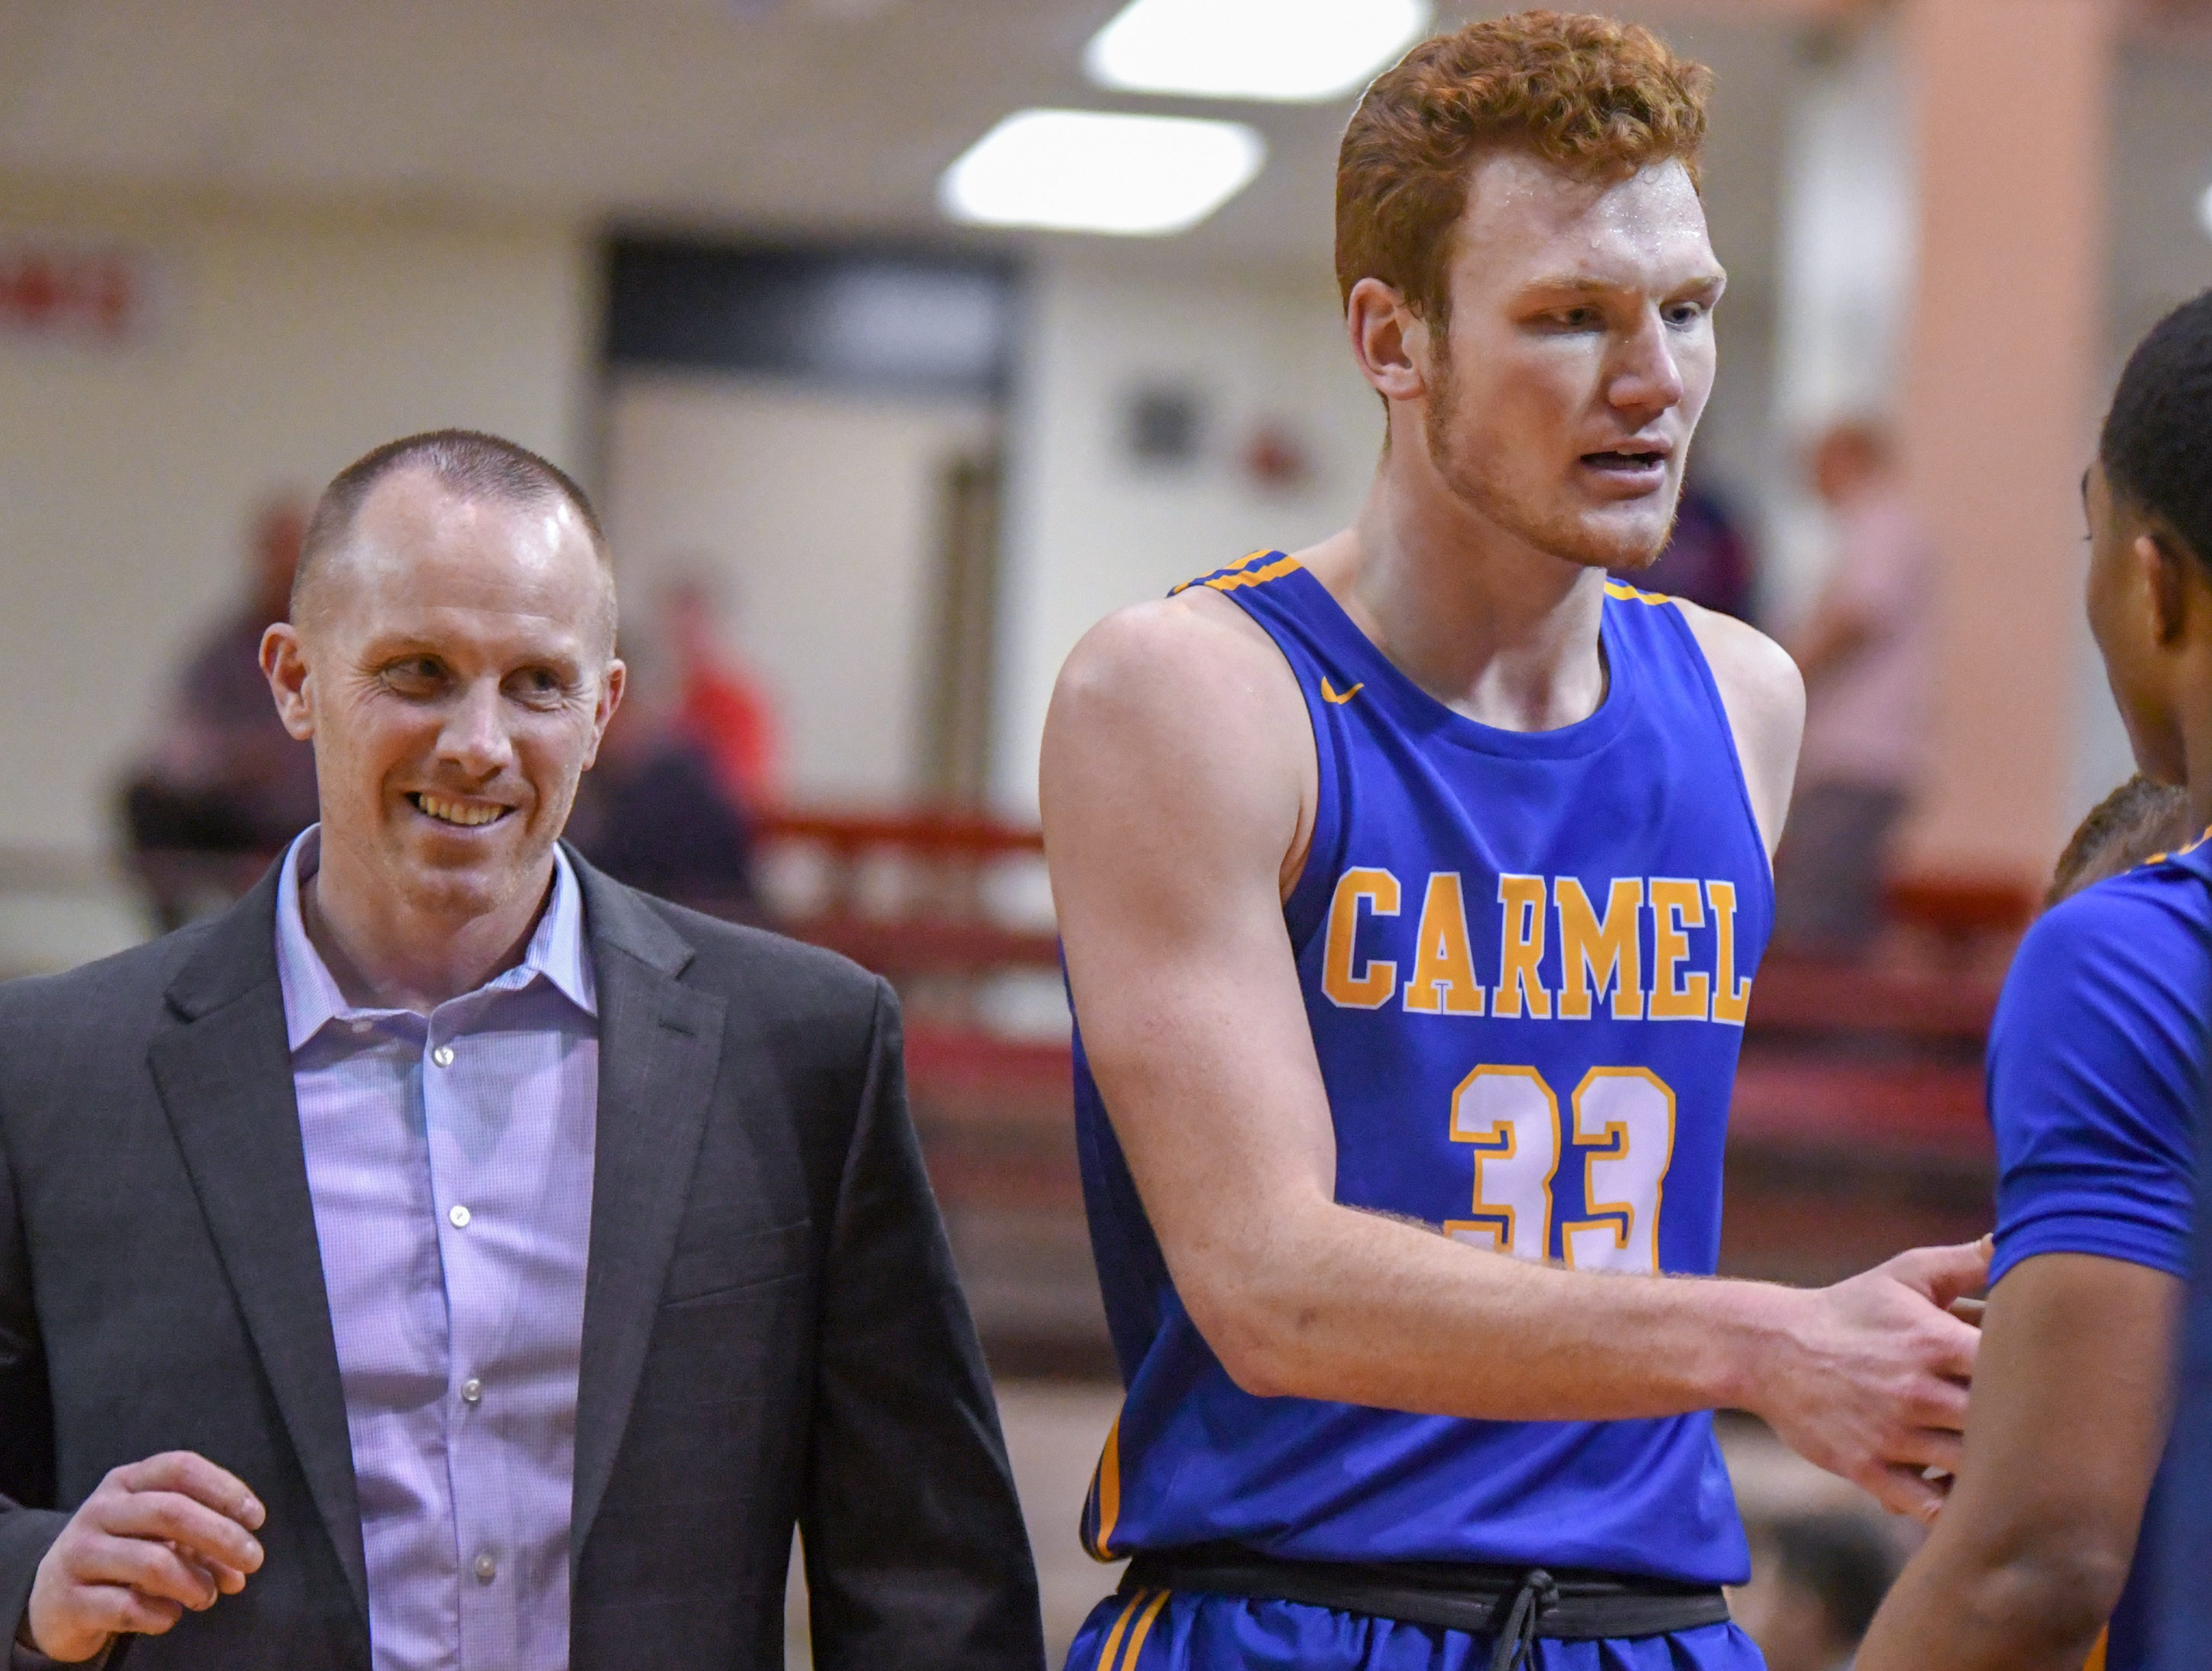 Carmel's John-Michael Mulloy leaves the game as coach Ryan Osborn smiles during his teams 71-42 win over Penn High School in Lafayette on Saturday March 16, 2019. Carmel moves on to the state finals after winning the 4A semi-state today.